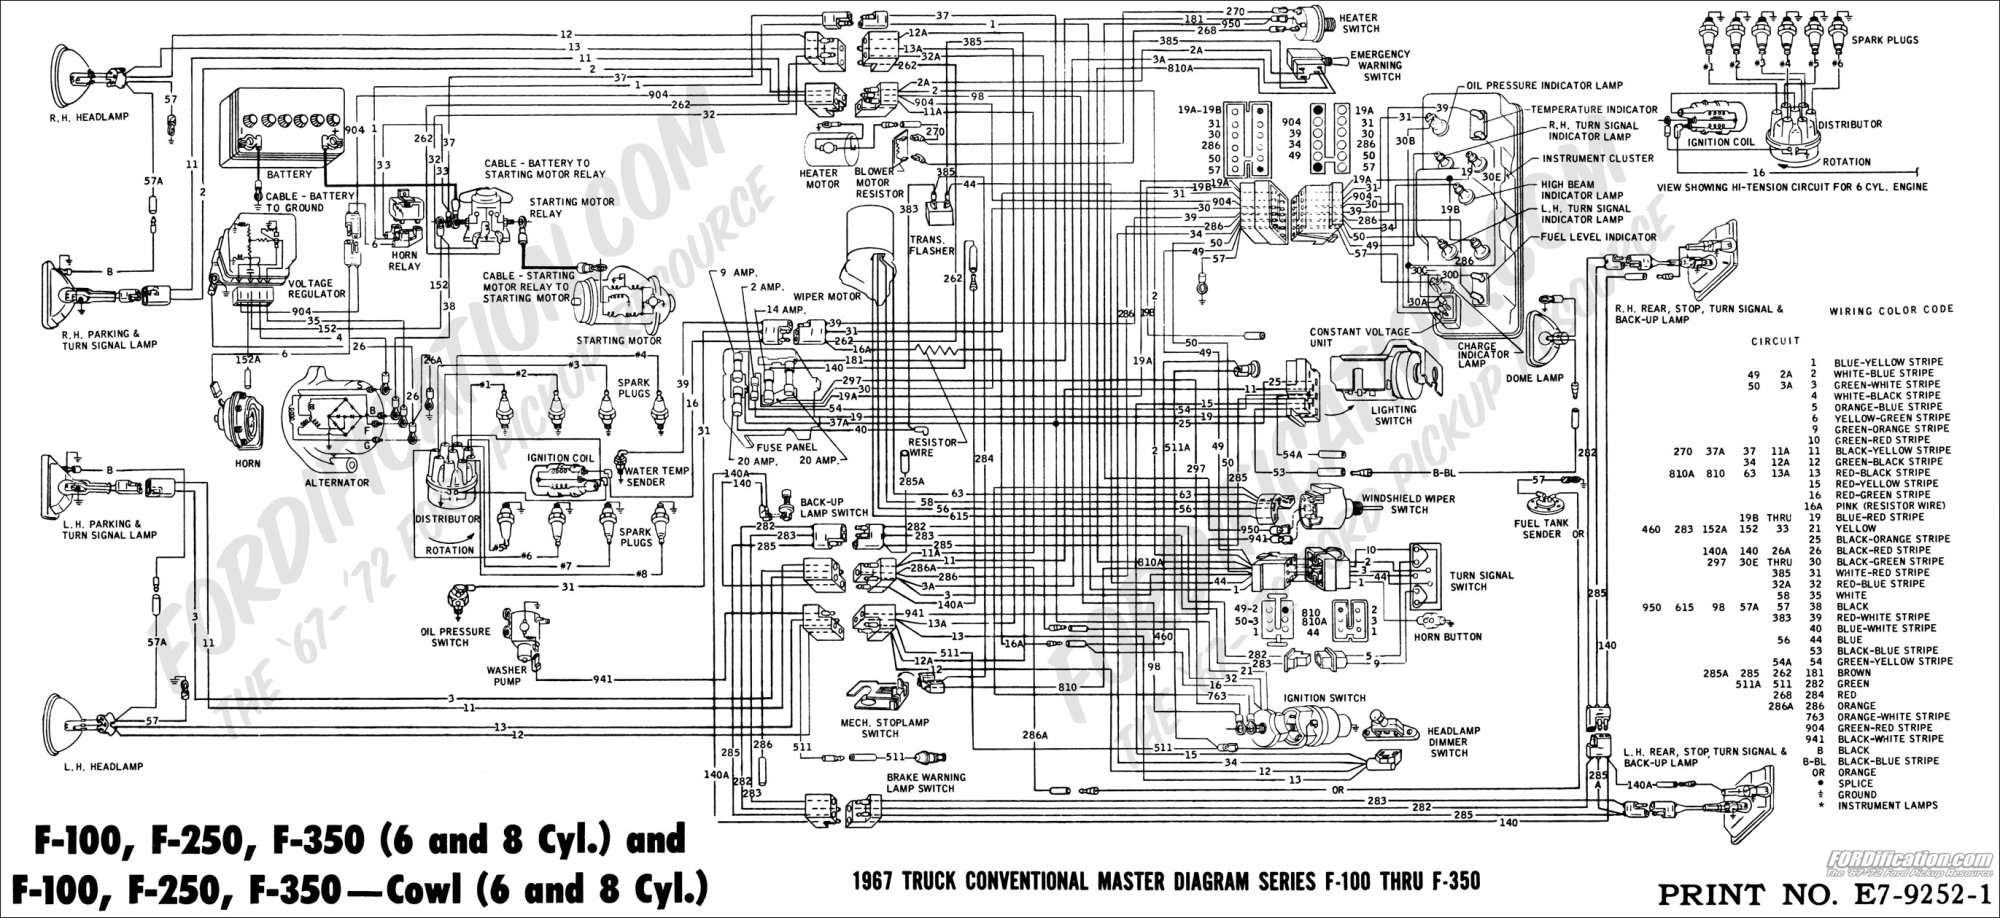 hight resolution of f150 wiring diagram wiring diagrams f150 wiring schematic 2005 f150 headlight wiring diagram